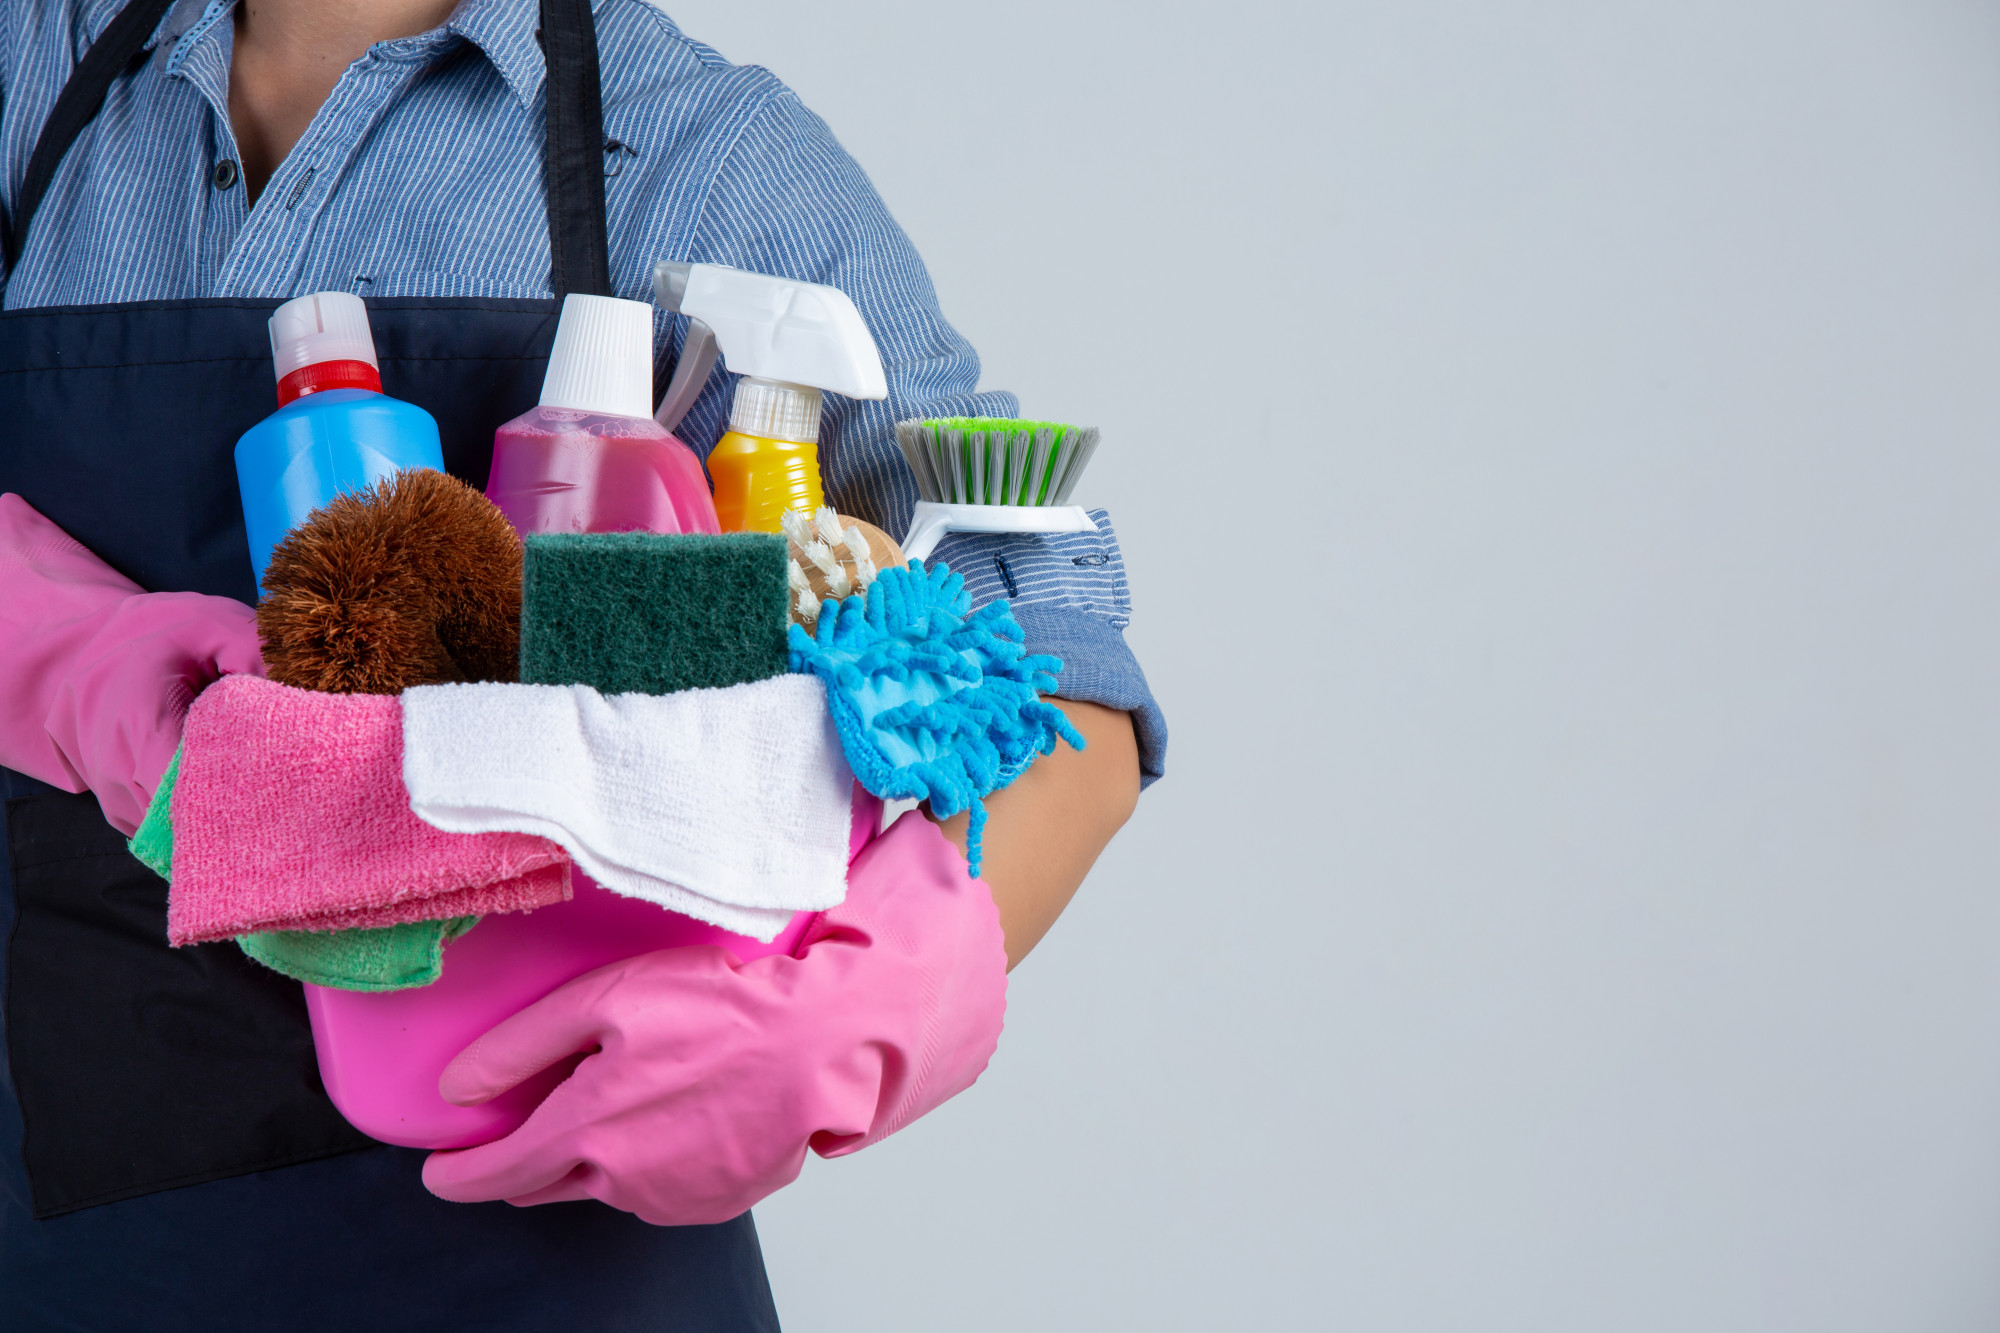 cleaning lady holding cleaning supplies